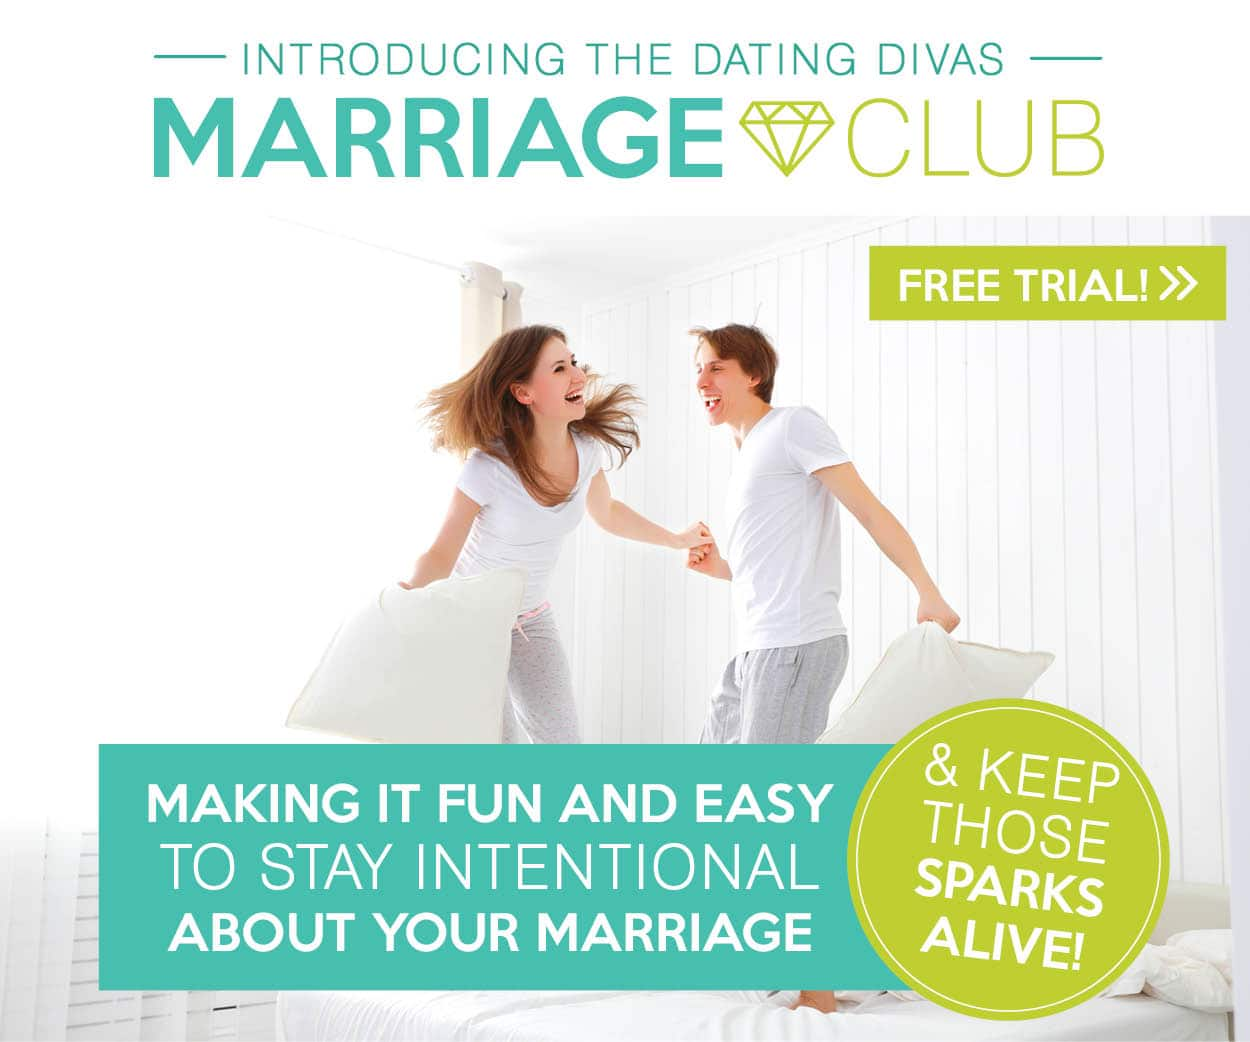 Introducing… THE DATING DIVAS MARRIAGE CLUB! A FUN and EASY way to stay intentional about your marriage!